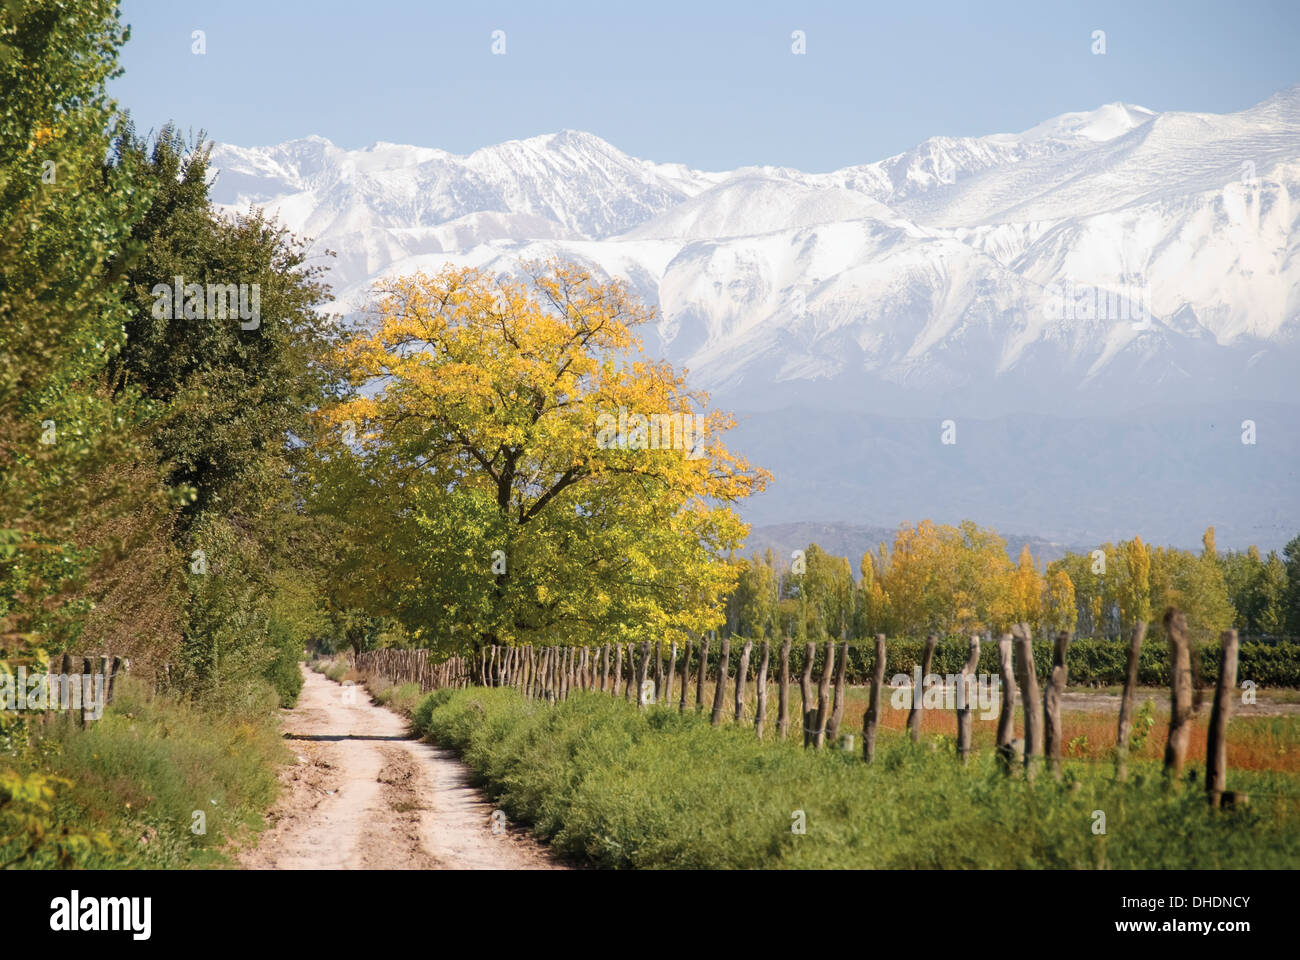 Country Farm Road With Snow Capped Mountains In The Background And Trees Golden Colours Mendoza Argentina